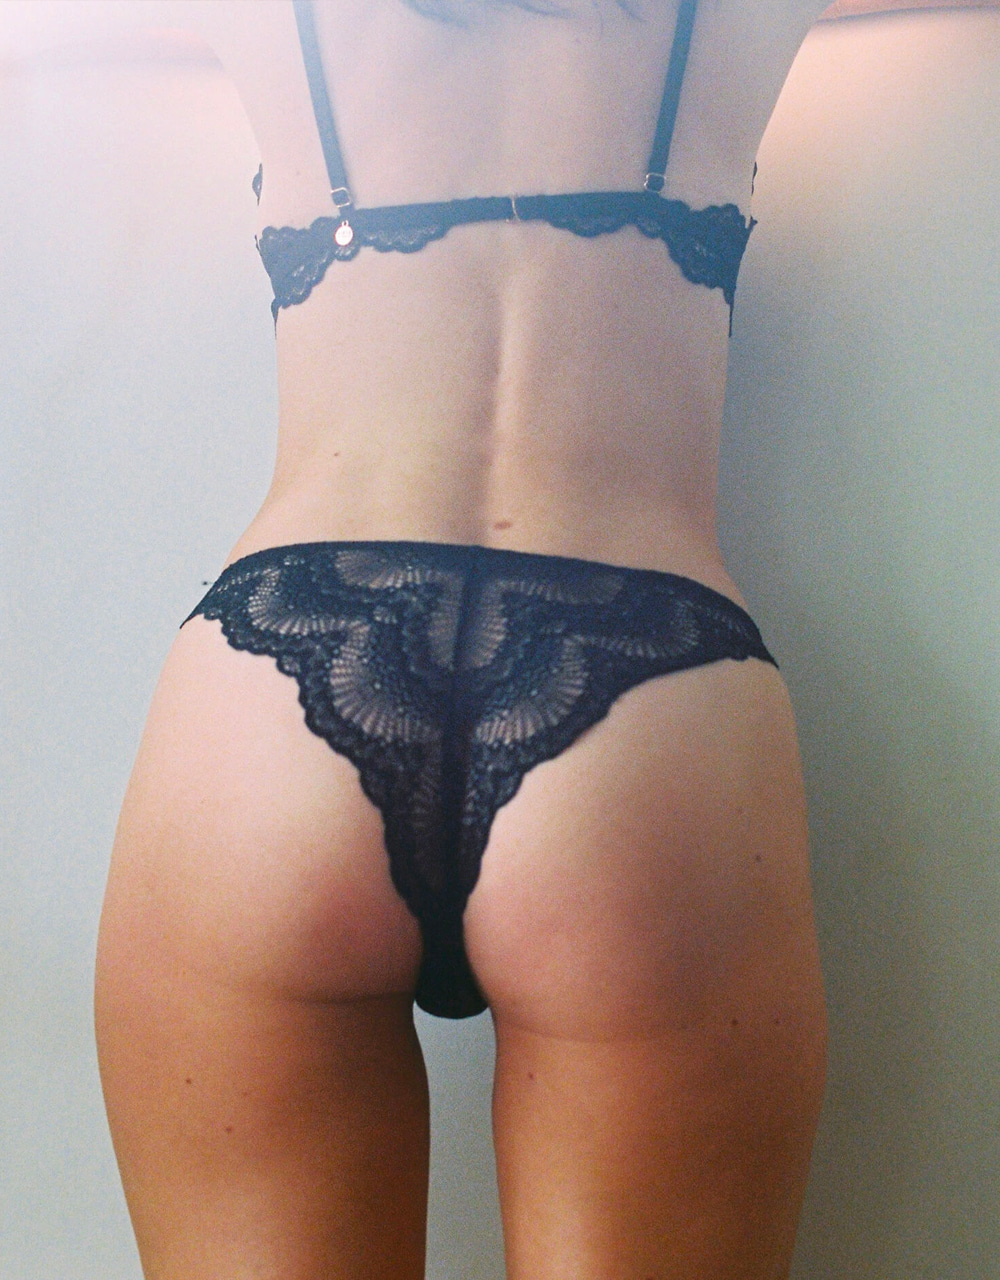 lingerie culotte Kate Digital black 25 € Girls In Paris photo 2